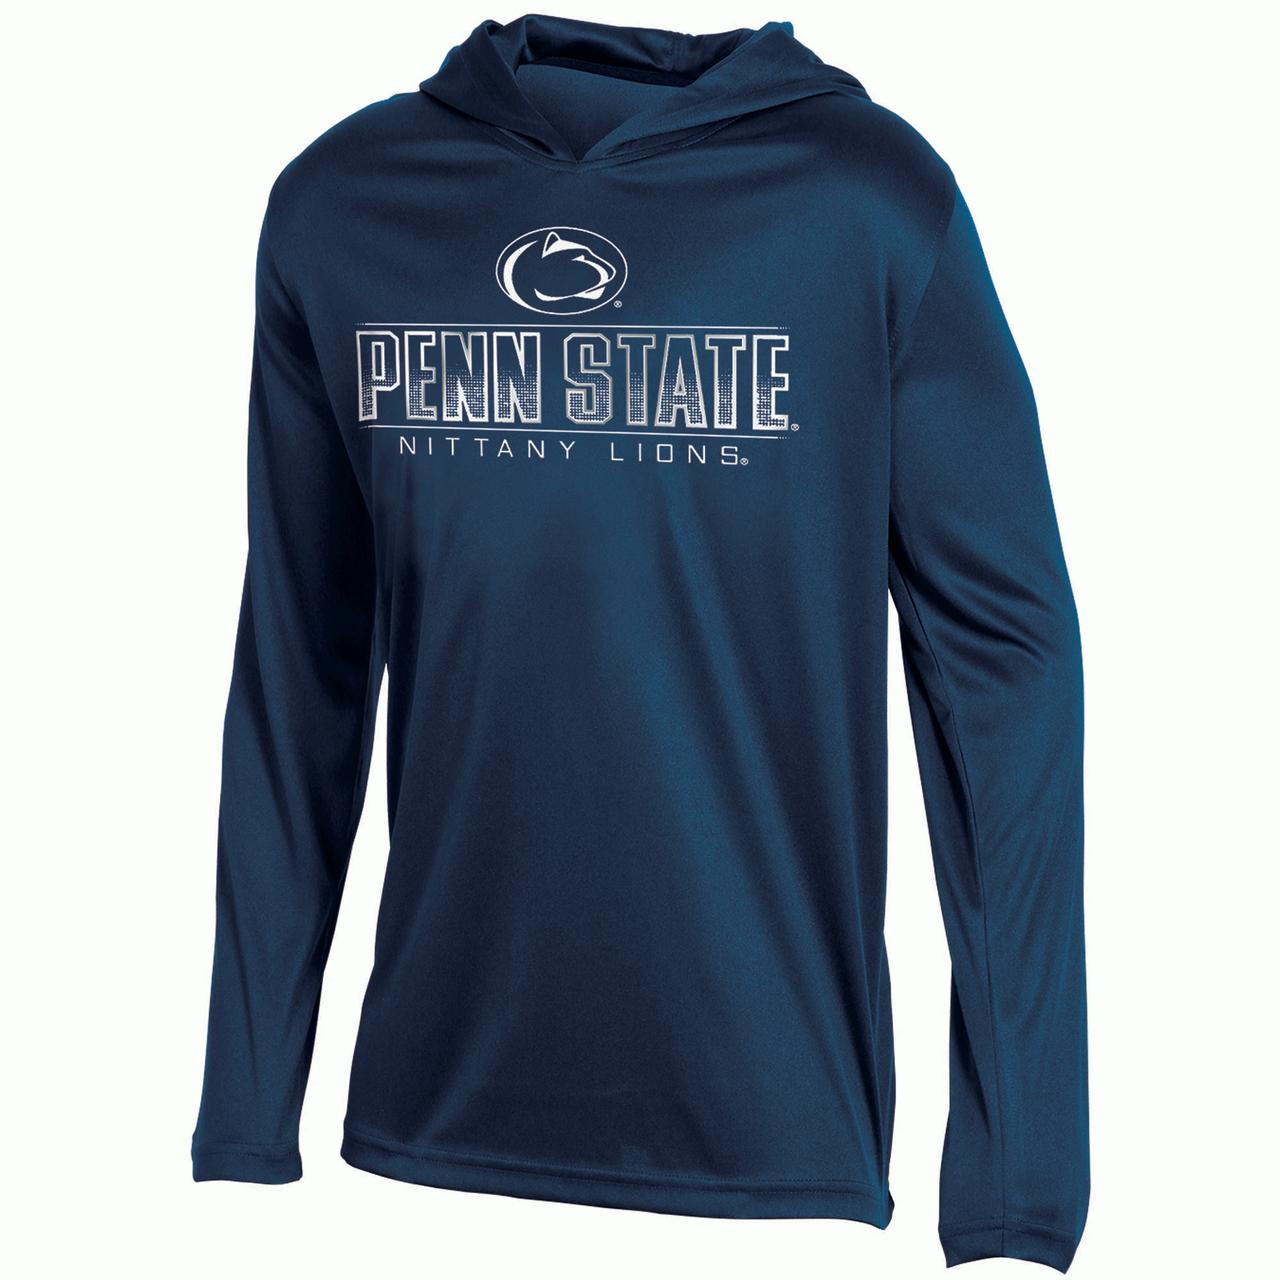 Youth Russell Navy Penn State Nittany Lions V-Neck Pullover Hoodie